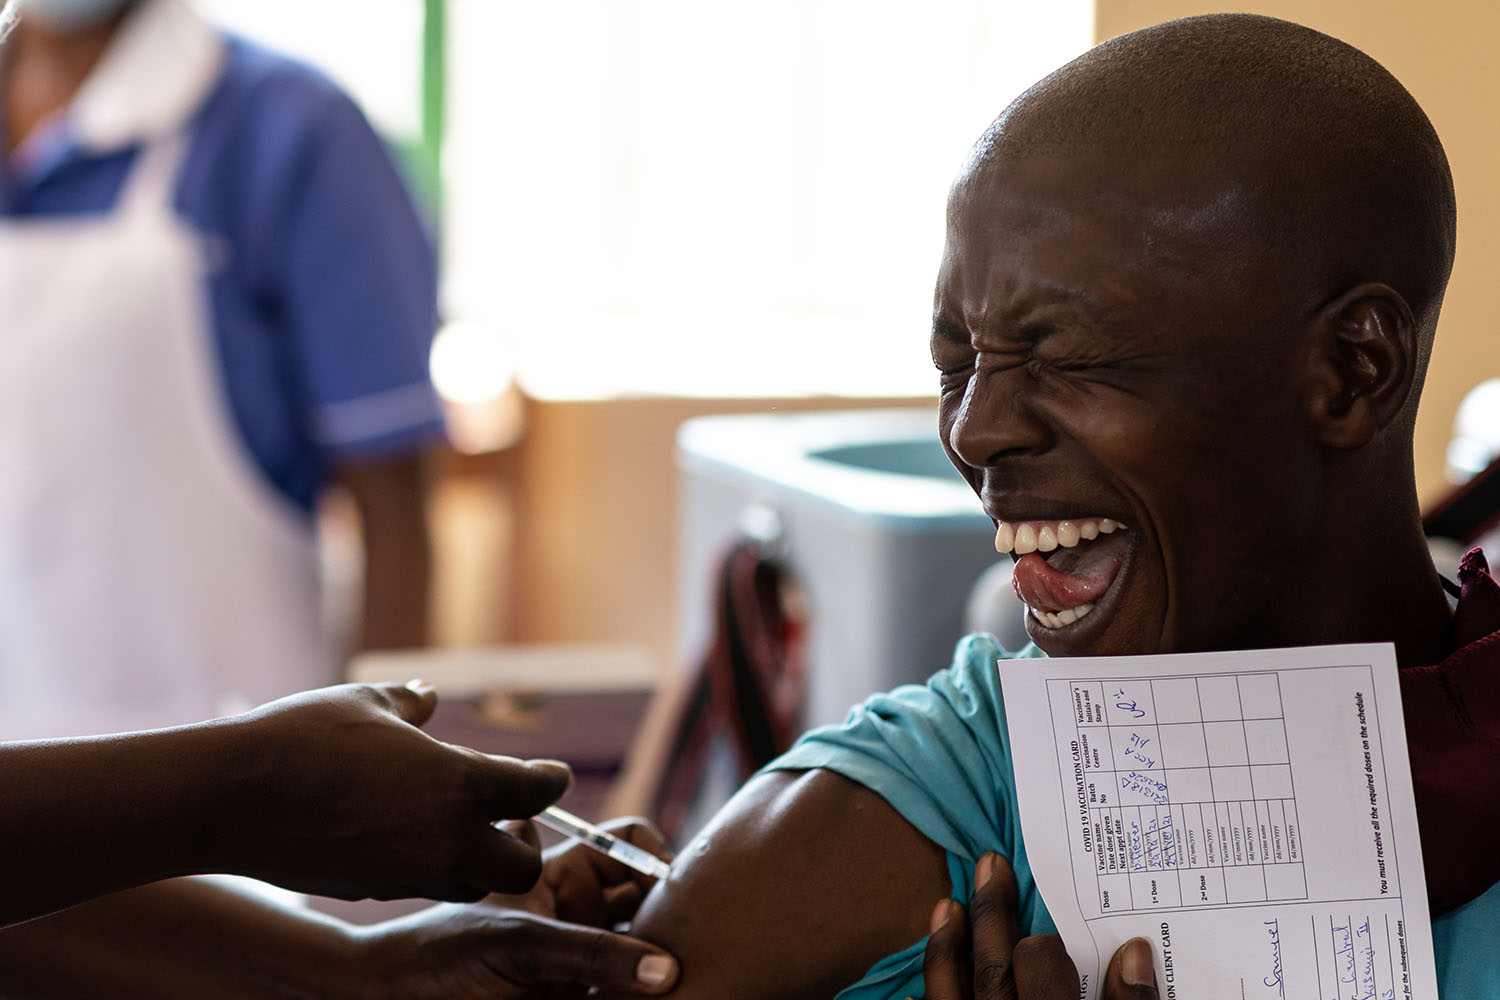 A patient reacts as a nurse injects the Pfizer coronavirus vaccine at a school as part of a new rollout of doses received from the U.S. government in Kampala, Uganda, on Sept. 29. Luke Dray/Getty Images